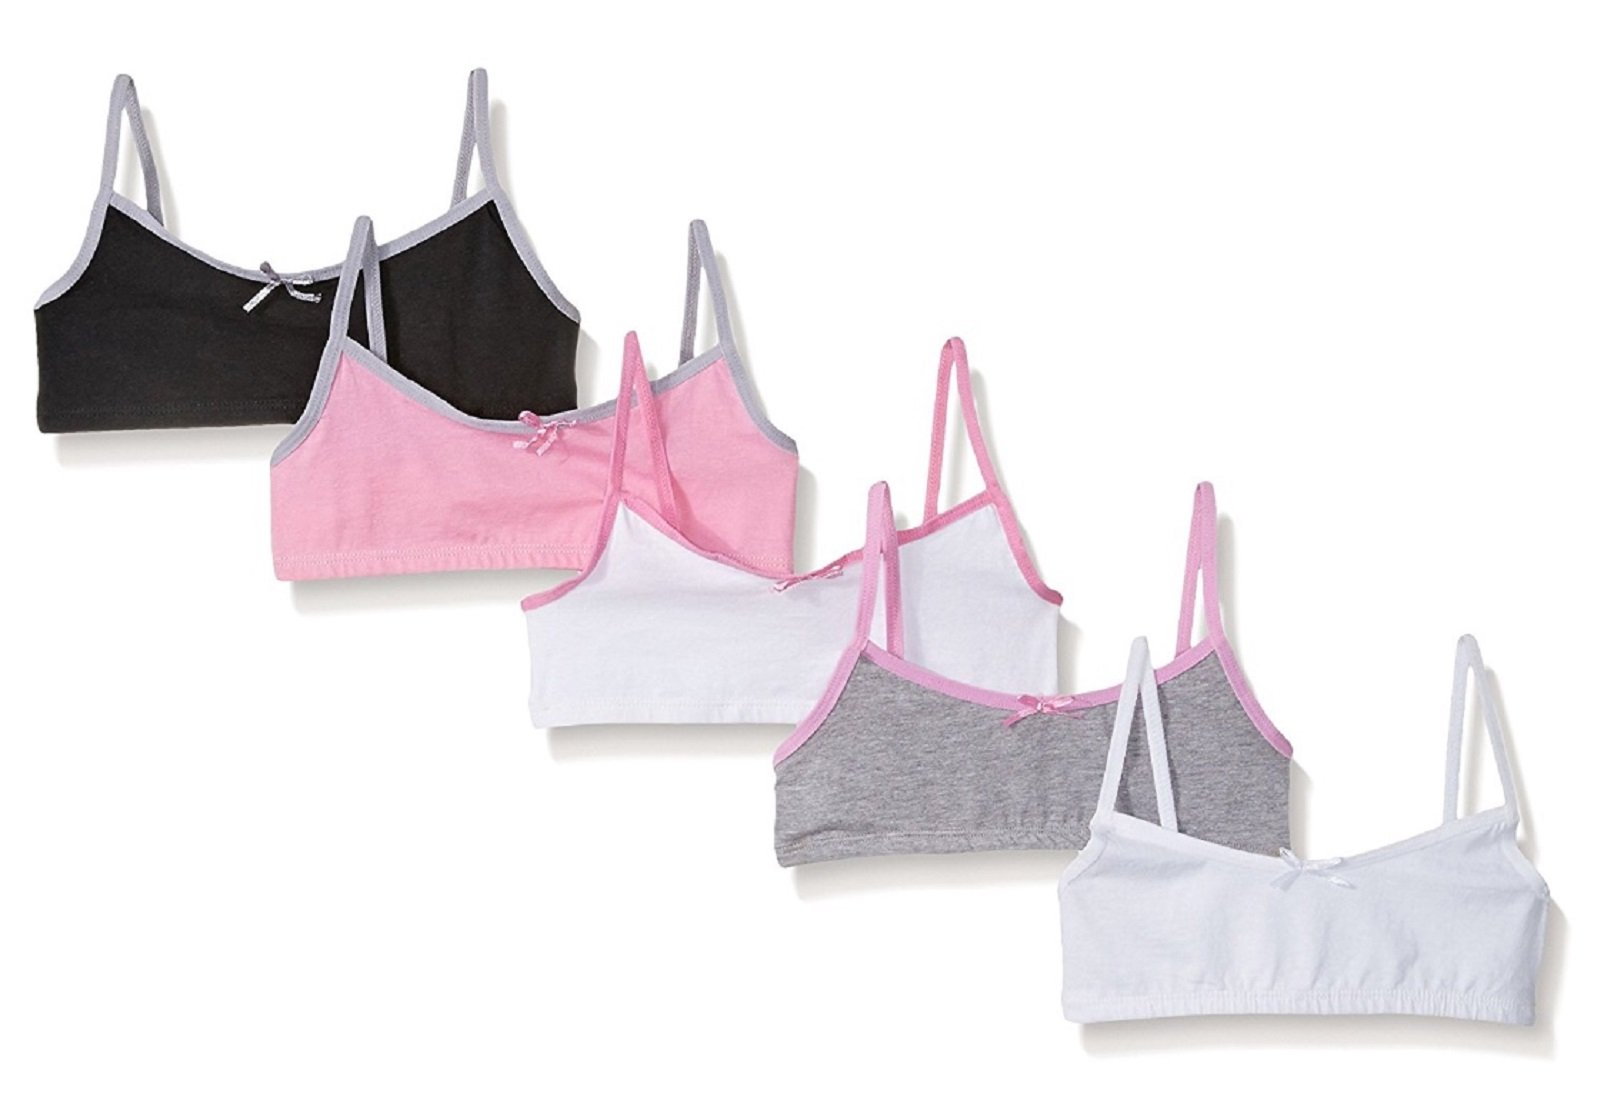 SWEET N SASSY Girls Pullover Style Bralettes 5 Pack Cotton and Spandex Crop Training Bra Sizes 30-34 (Color Trim Bralettes, Large 34)